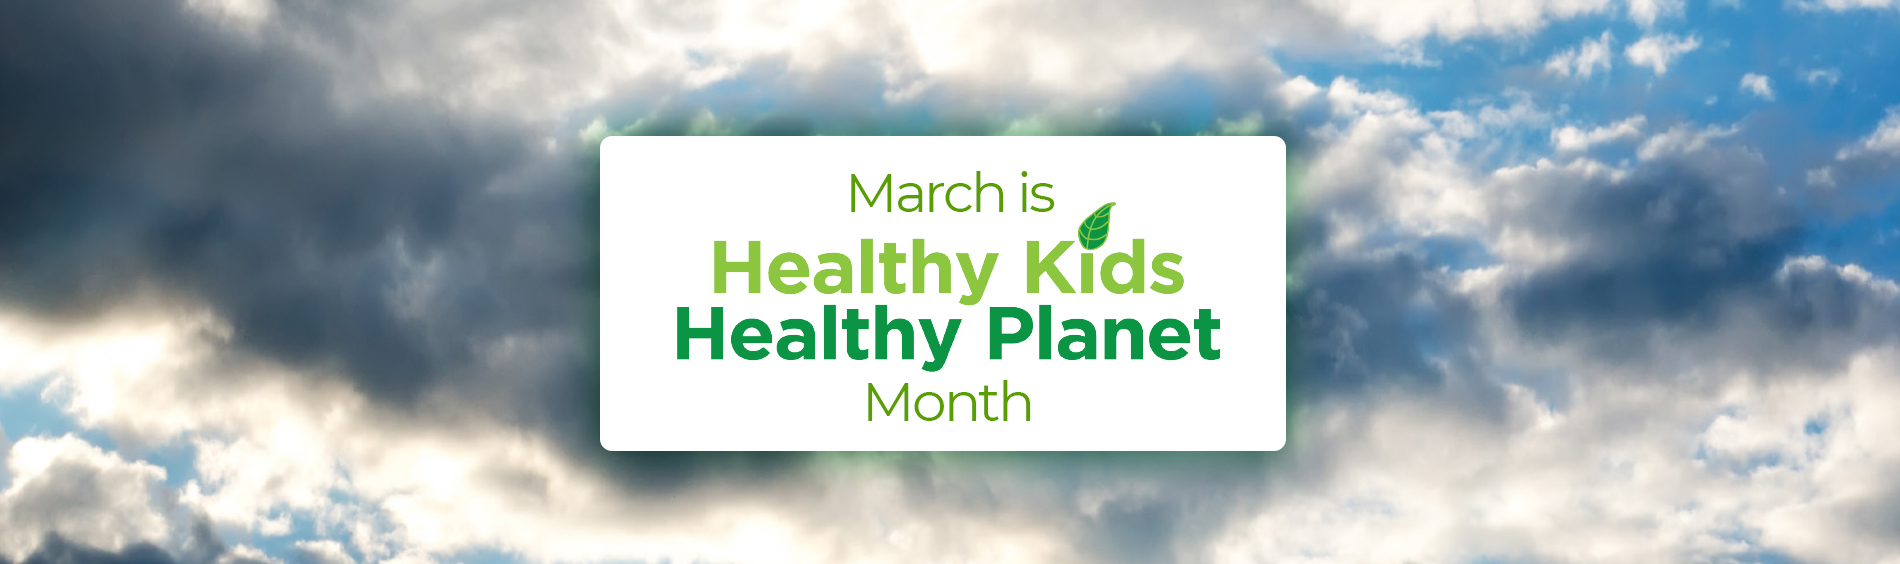 Healthy Kids Healthy Planet logo